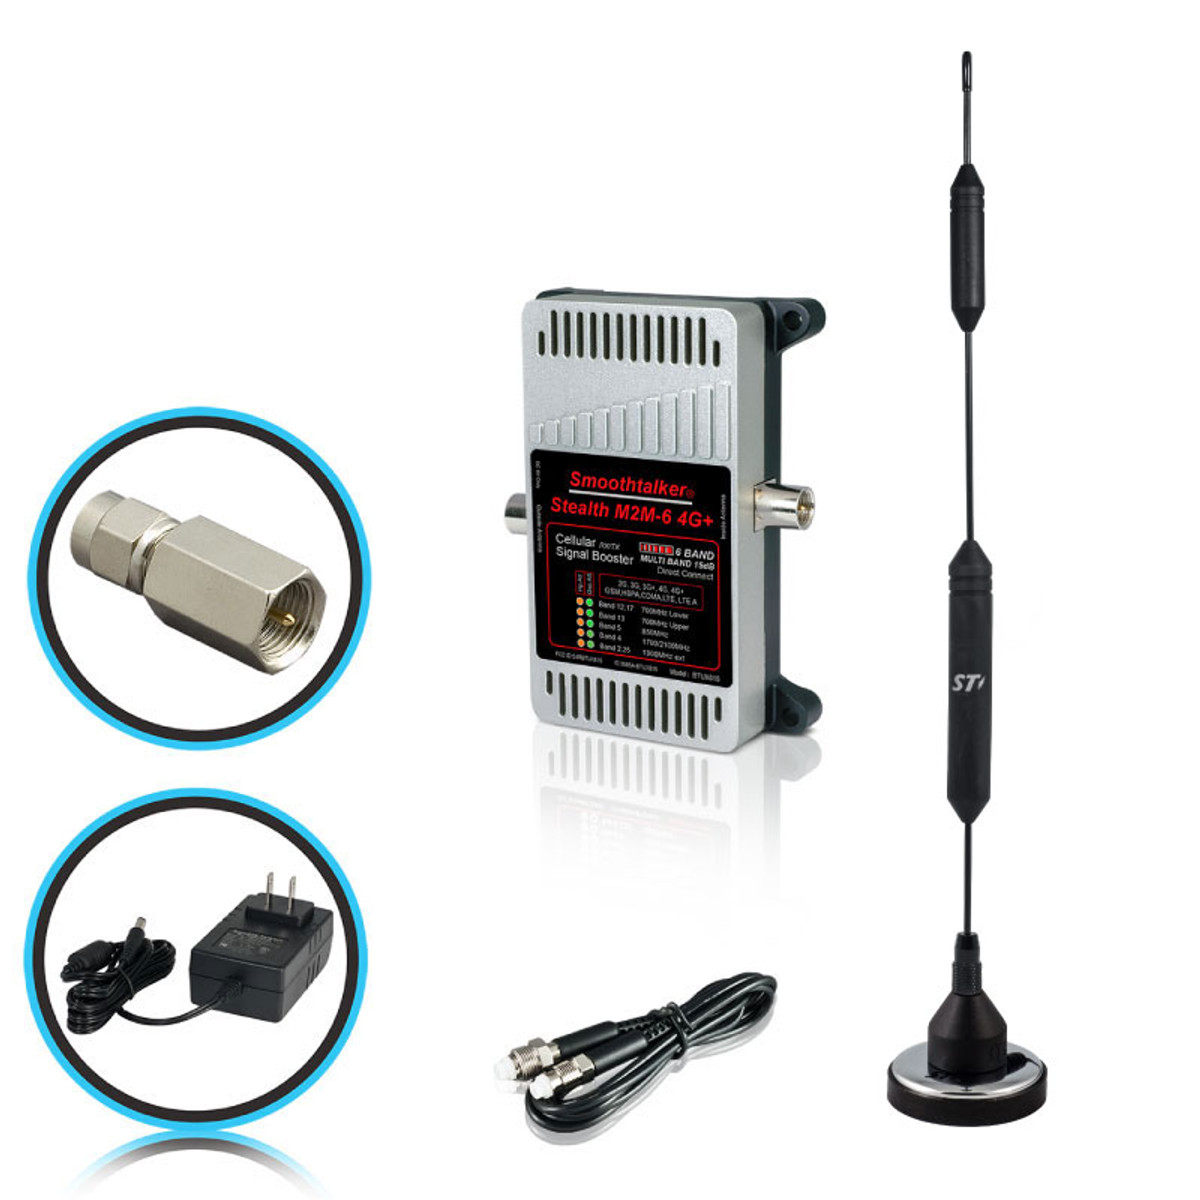 SmoothTalker Stealth M2M X6 Signal Booster